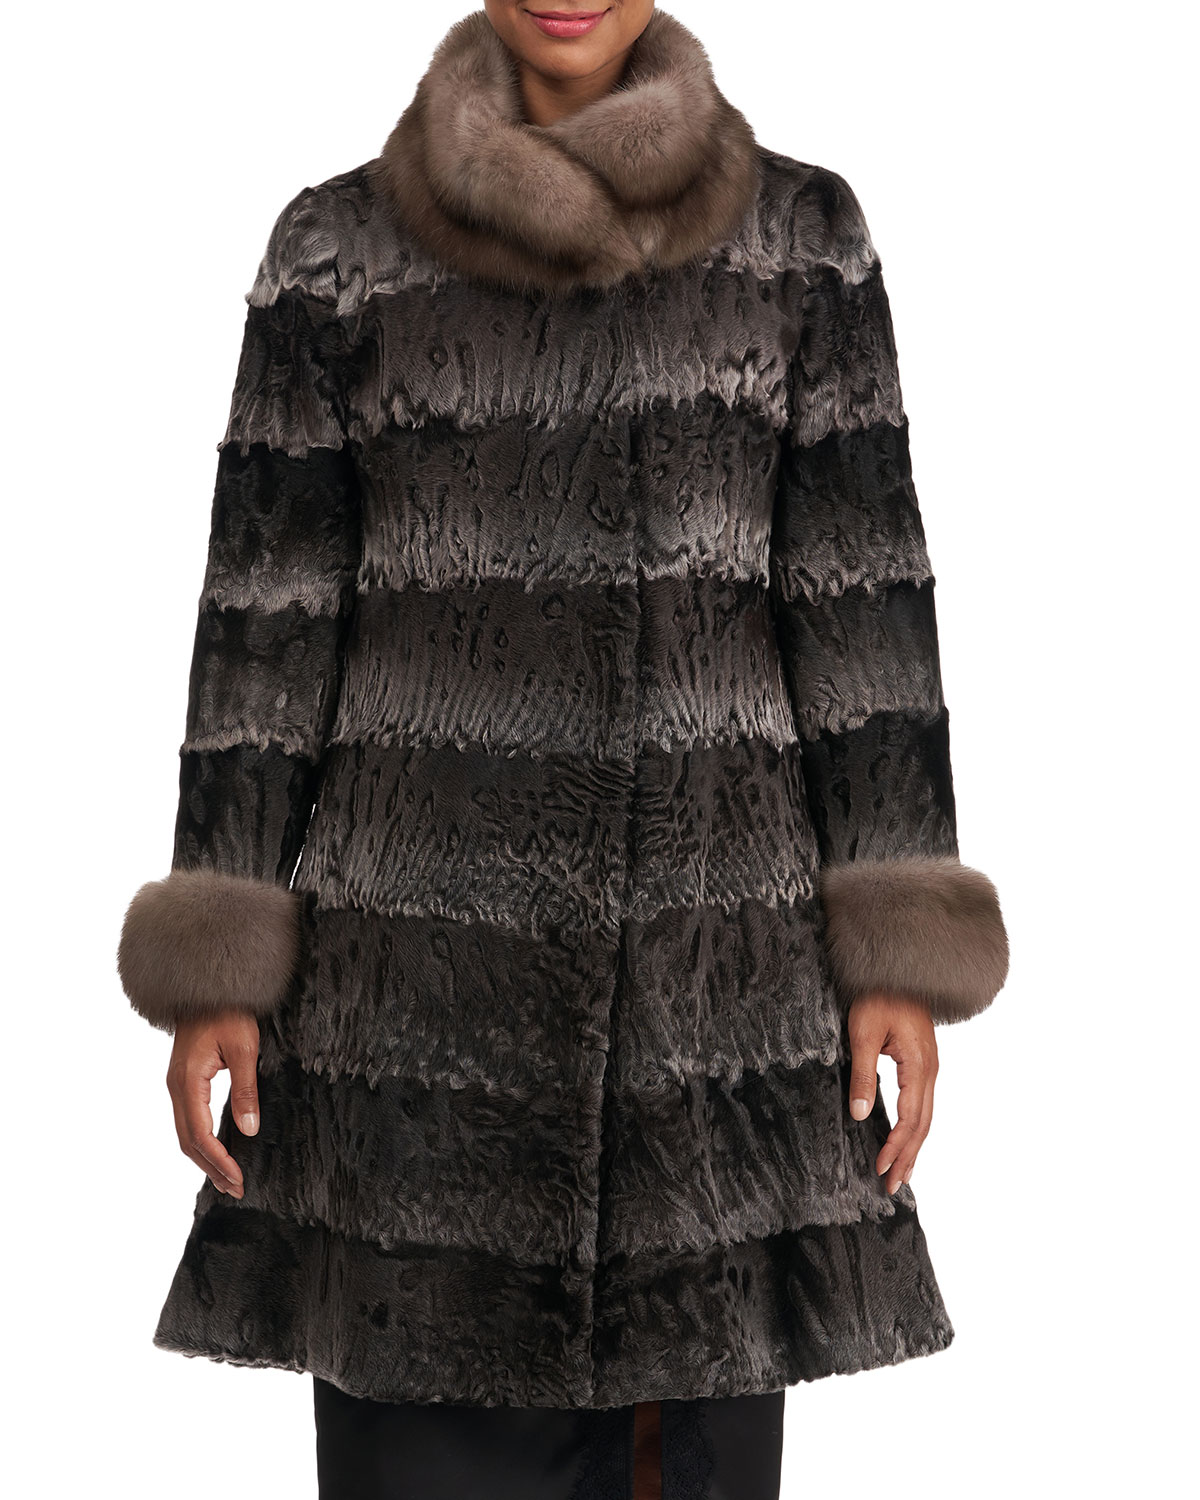 Zac Posen Coats LAMB FUR STROLLER COAT W/ SABLE COLLAR AND CUFFS